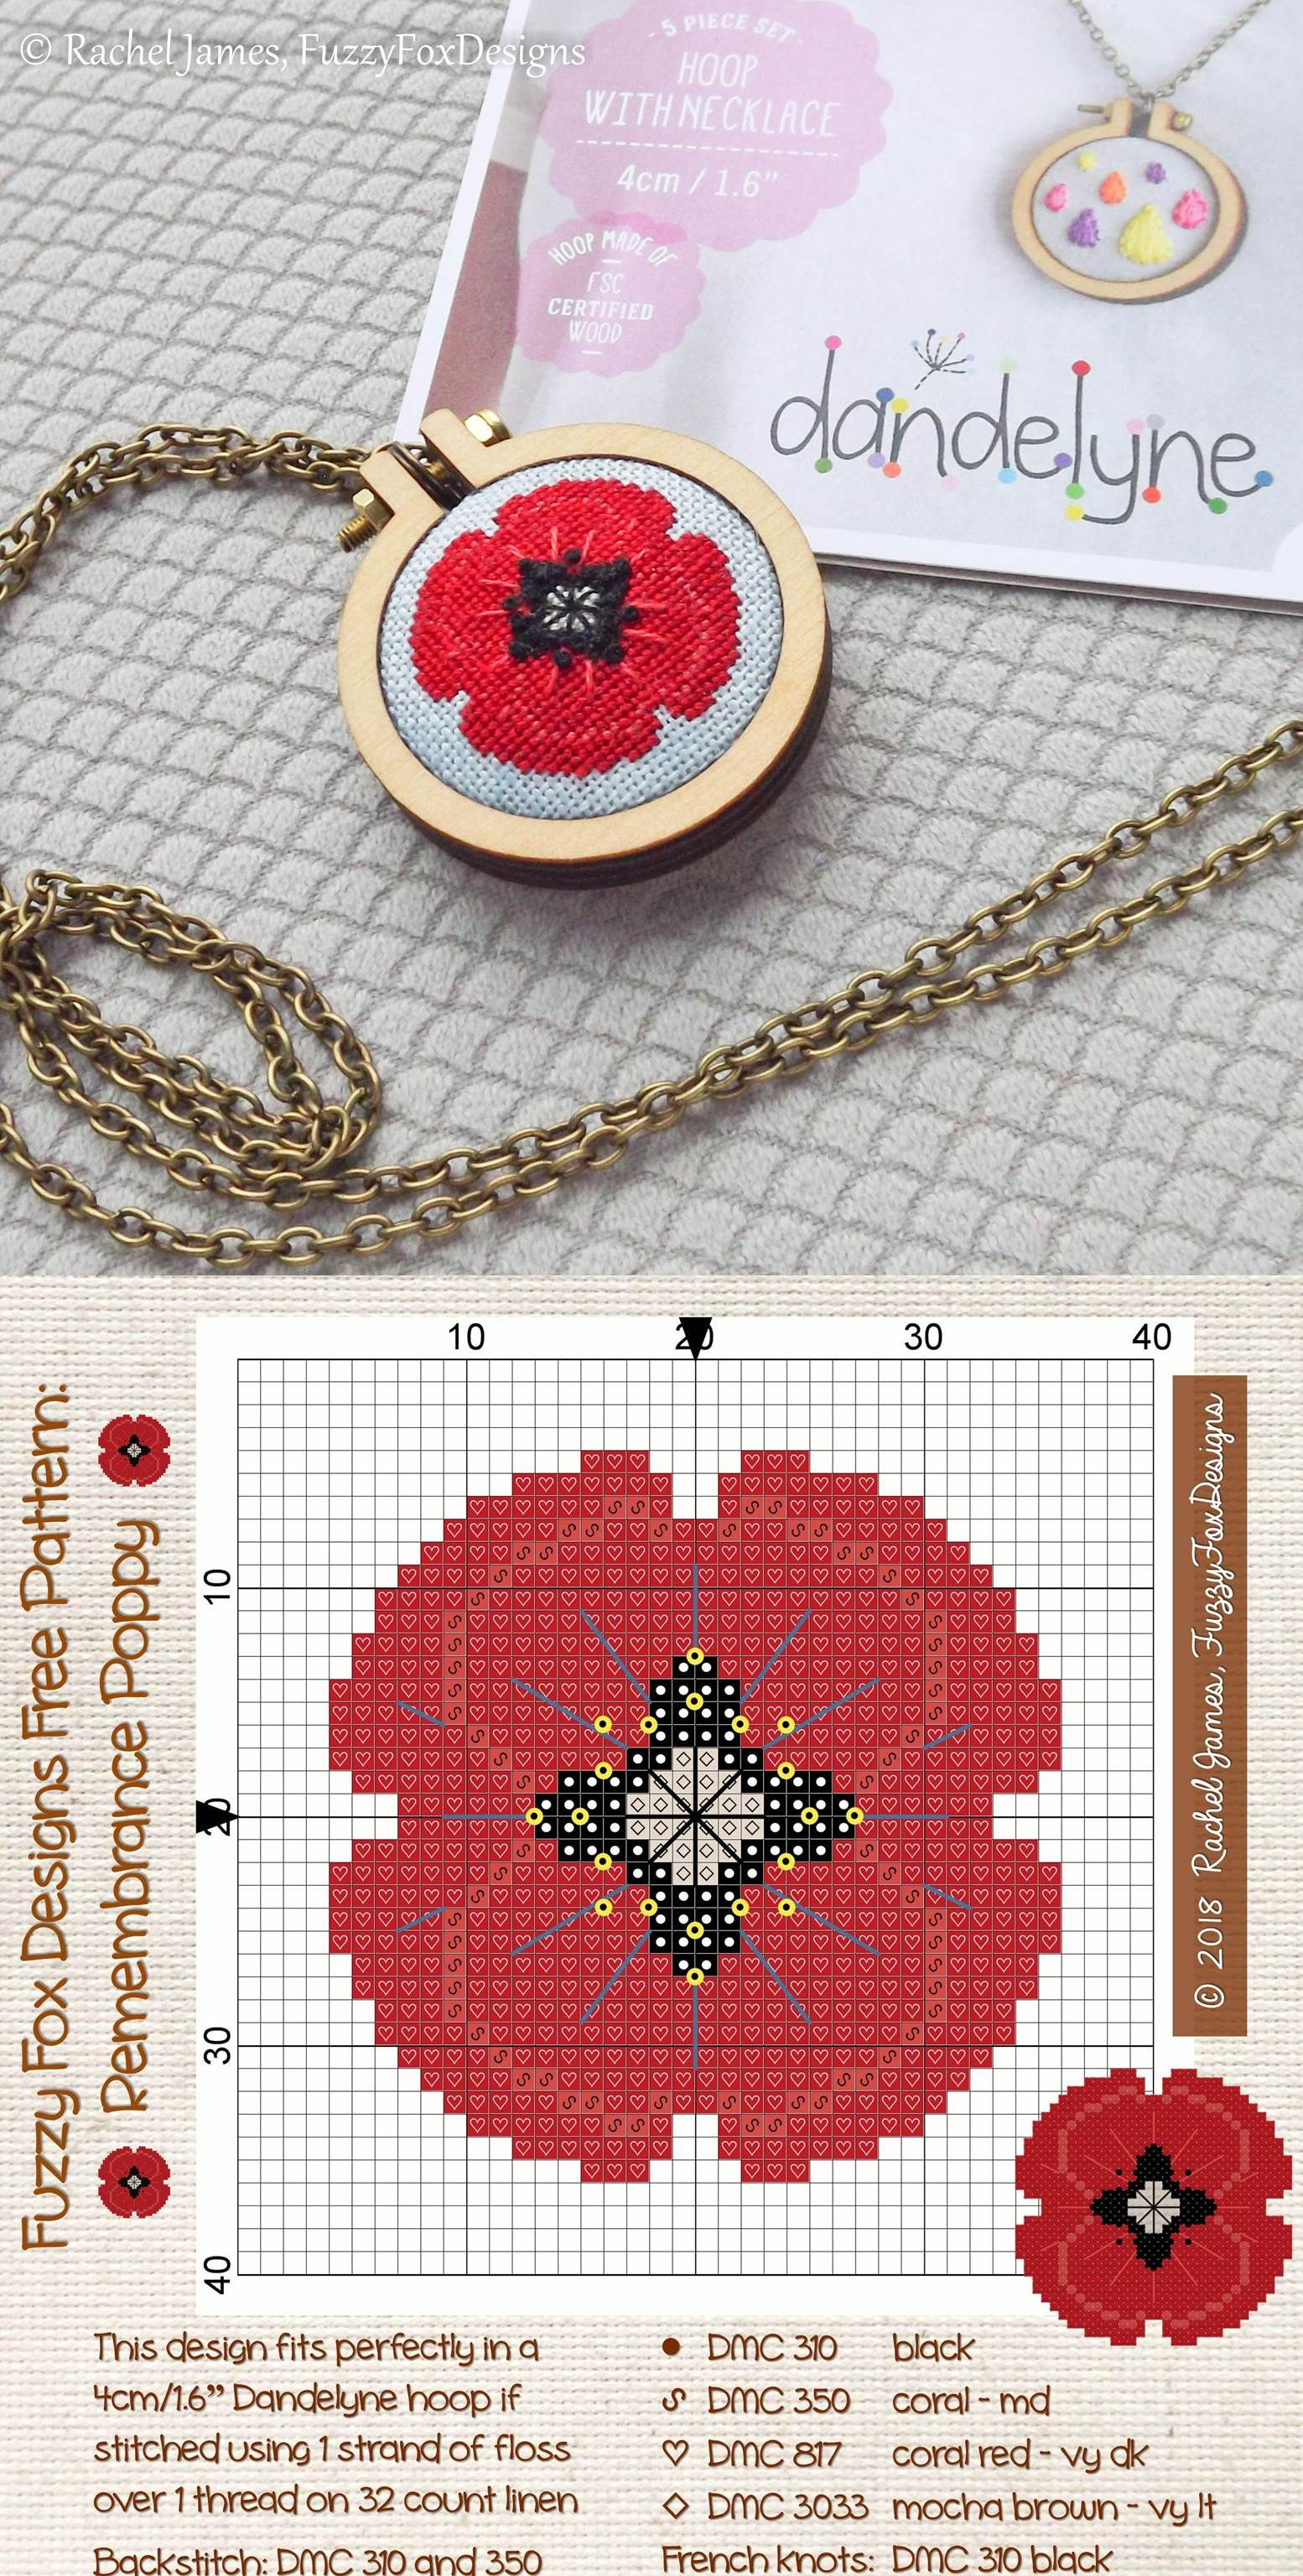 Poppy Black Cat Poppies Pincushion Cross Stitch Kit By Textile Heritage